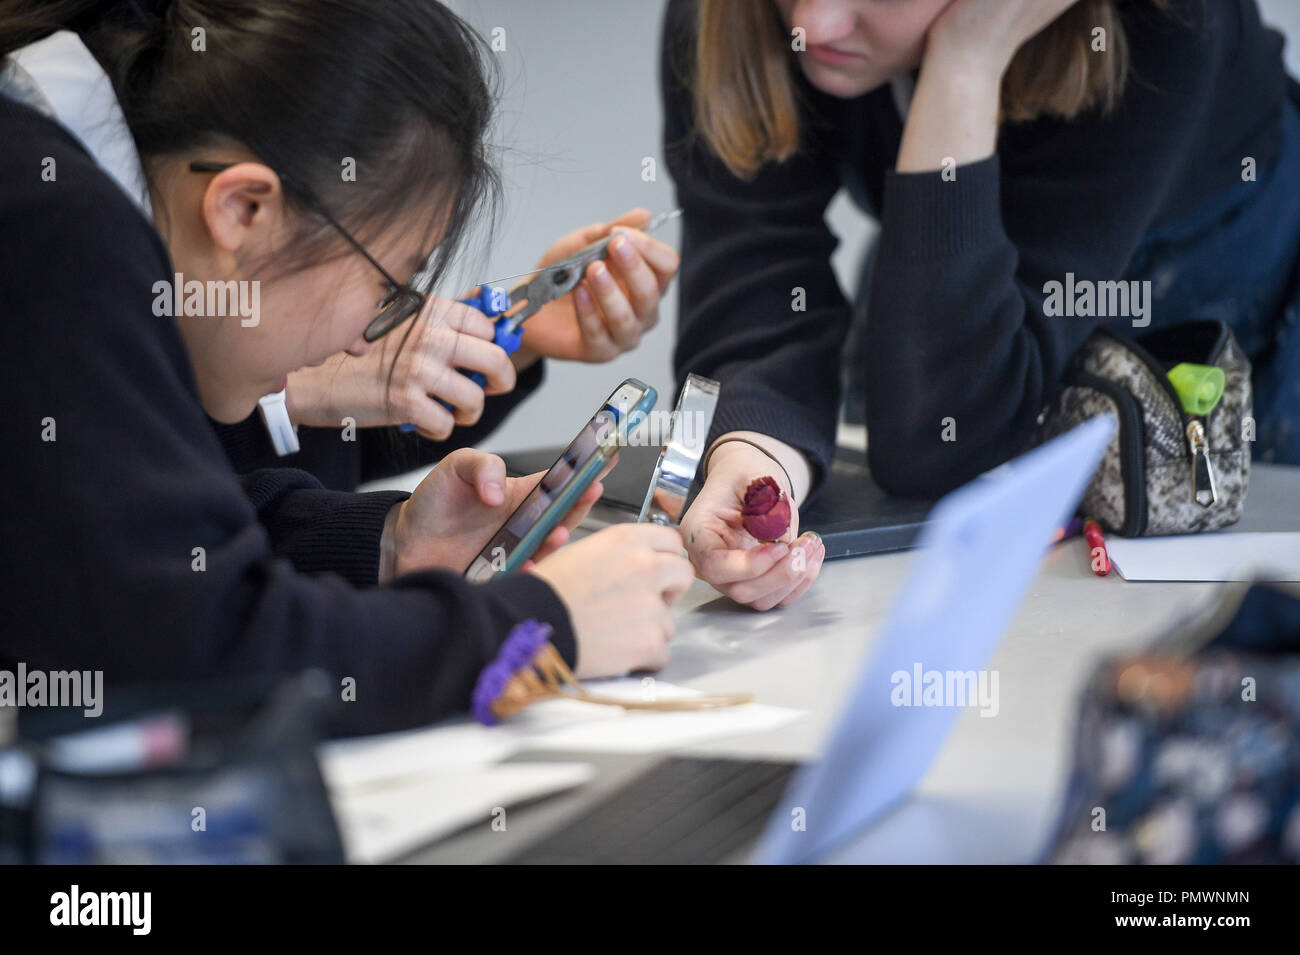 Students use a mobile phone in an art class at Royal High School Bath, which is a day and boarding school for girls aged 3-18 and also part of The Girls' Day School Trust, the leading network of independent girls' schools in the UK. Stock Photo